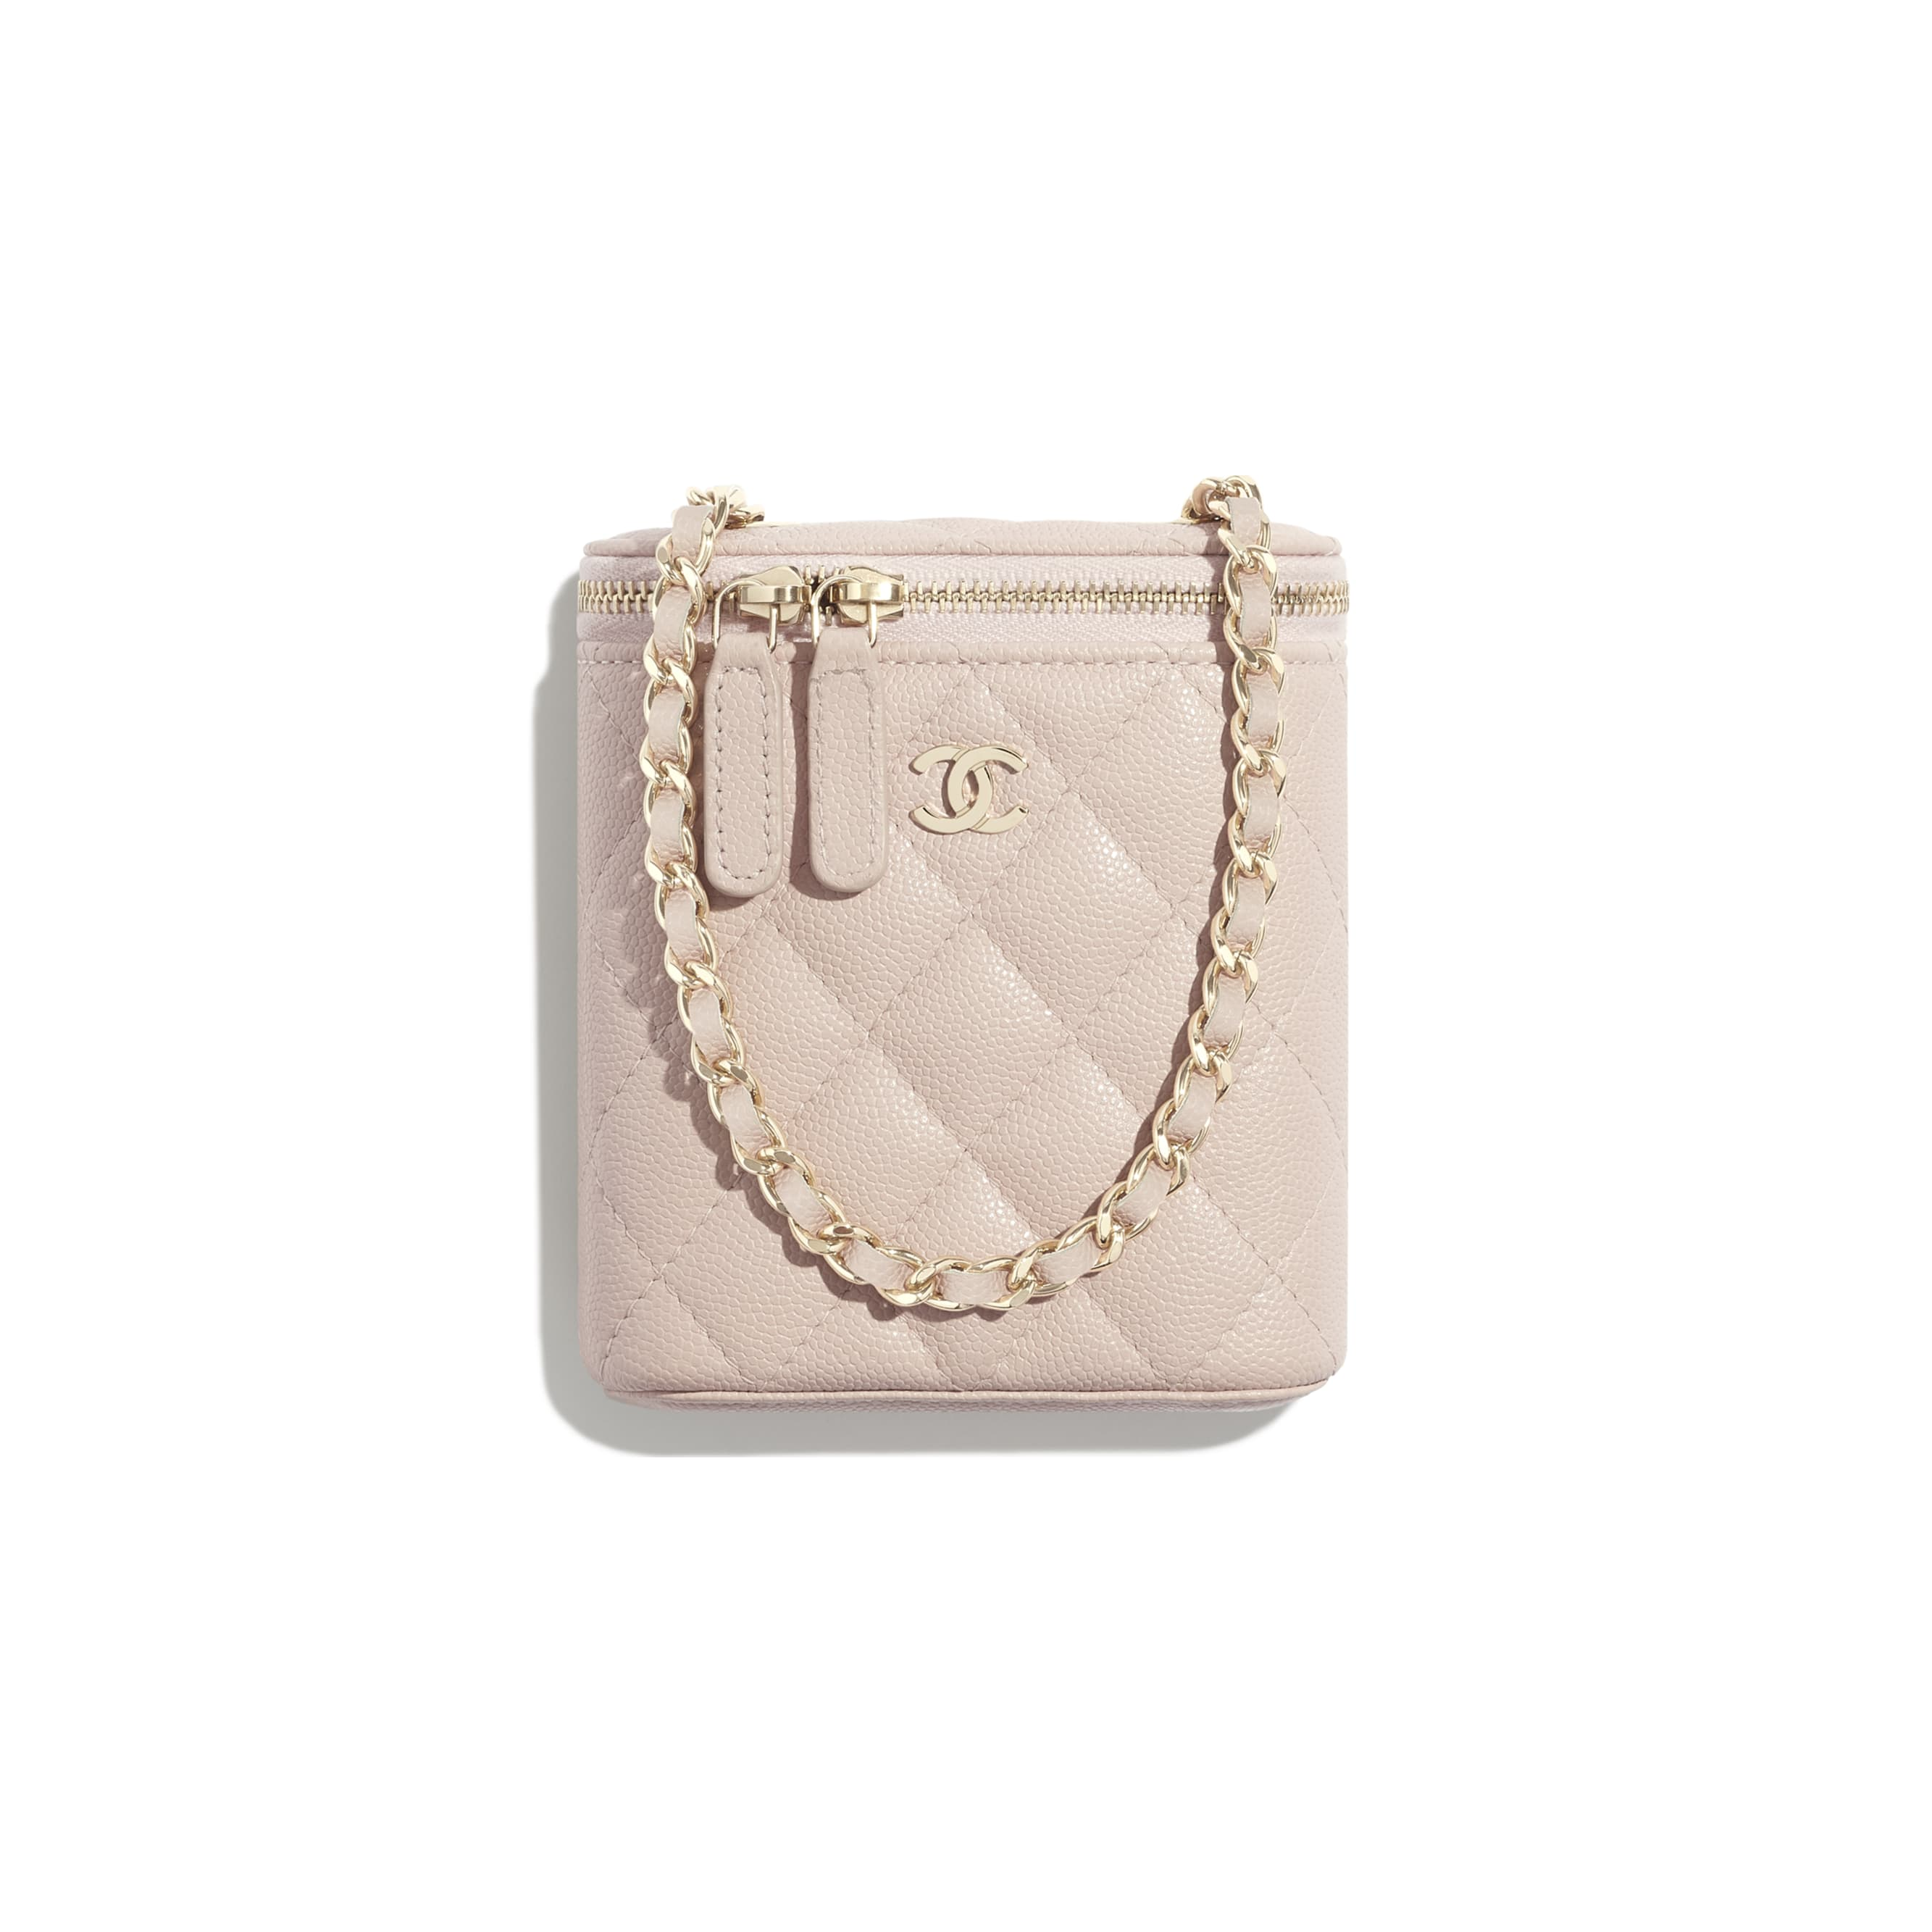 Classic Vanity with Chain - Pale Pink - Grained Calfskin & Gold-Tone Metal - CHANEL - Default view - see standard sized version